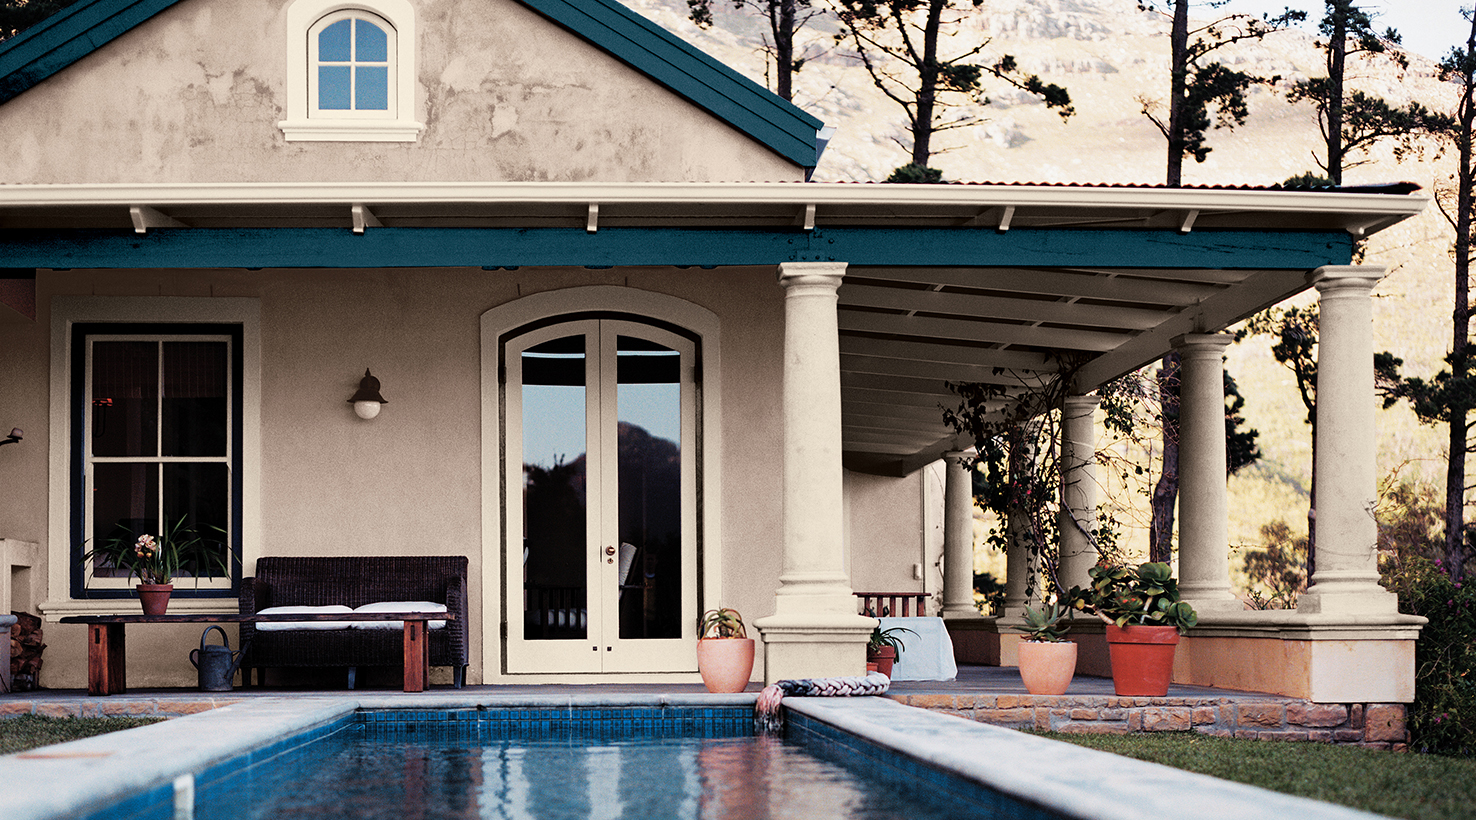 Gallant Neutrals Exterior Color Inspiration Body Paint Colors Sherwin Williams San Diego North County Sherwin Williams San Diego Jobs houzz-03 Sherwin Williams San Diego